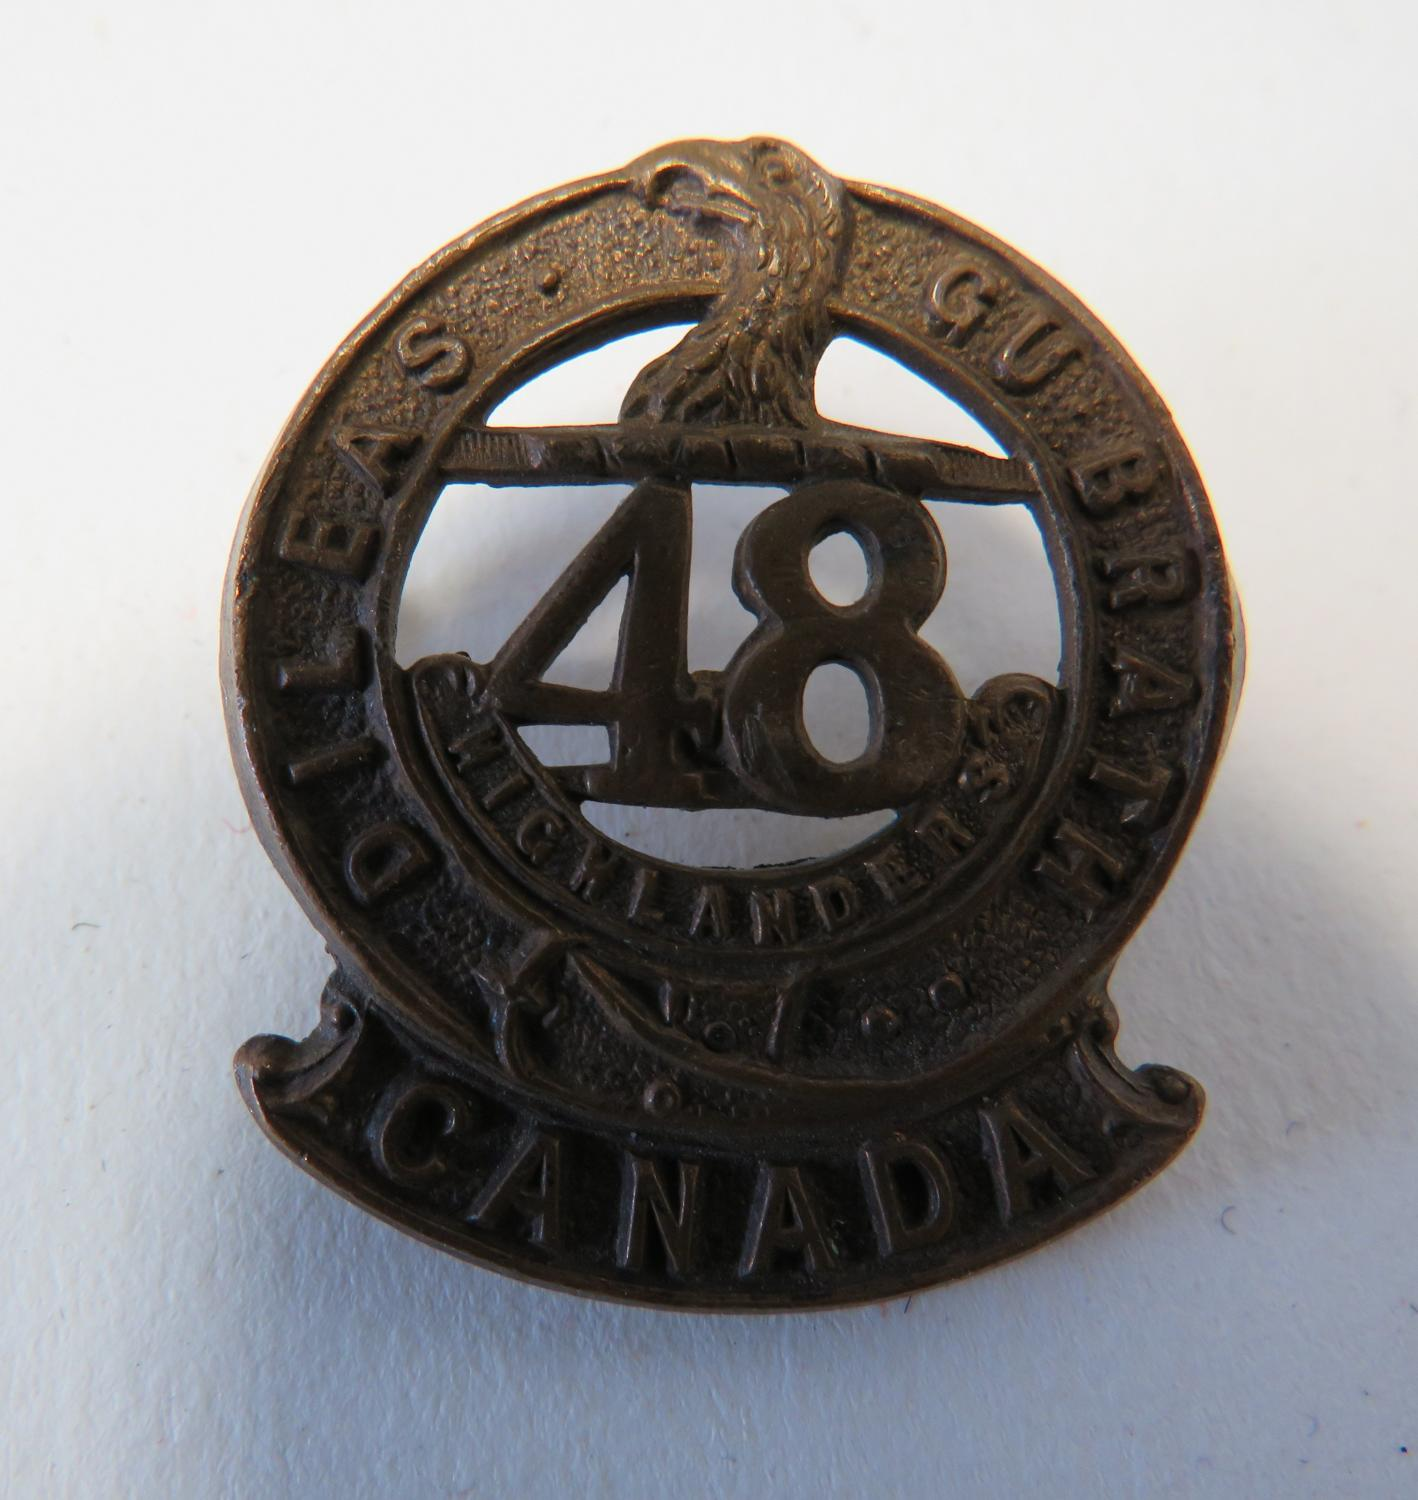 Canada 48th Highlanders Cap /Large Collar Badge